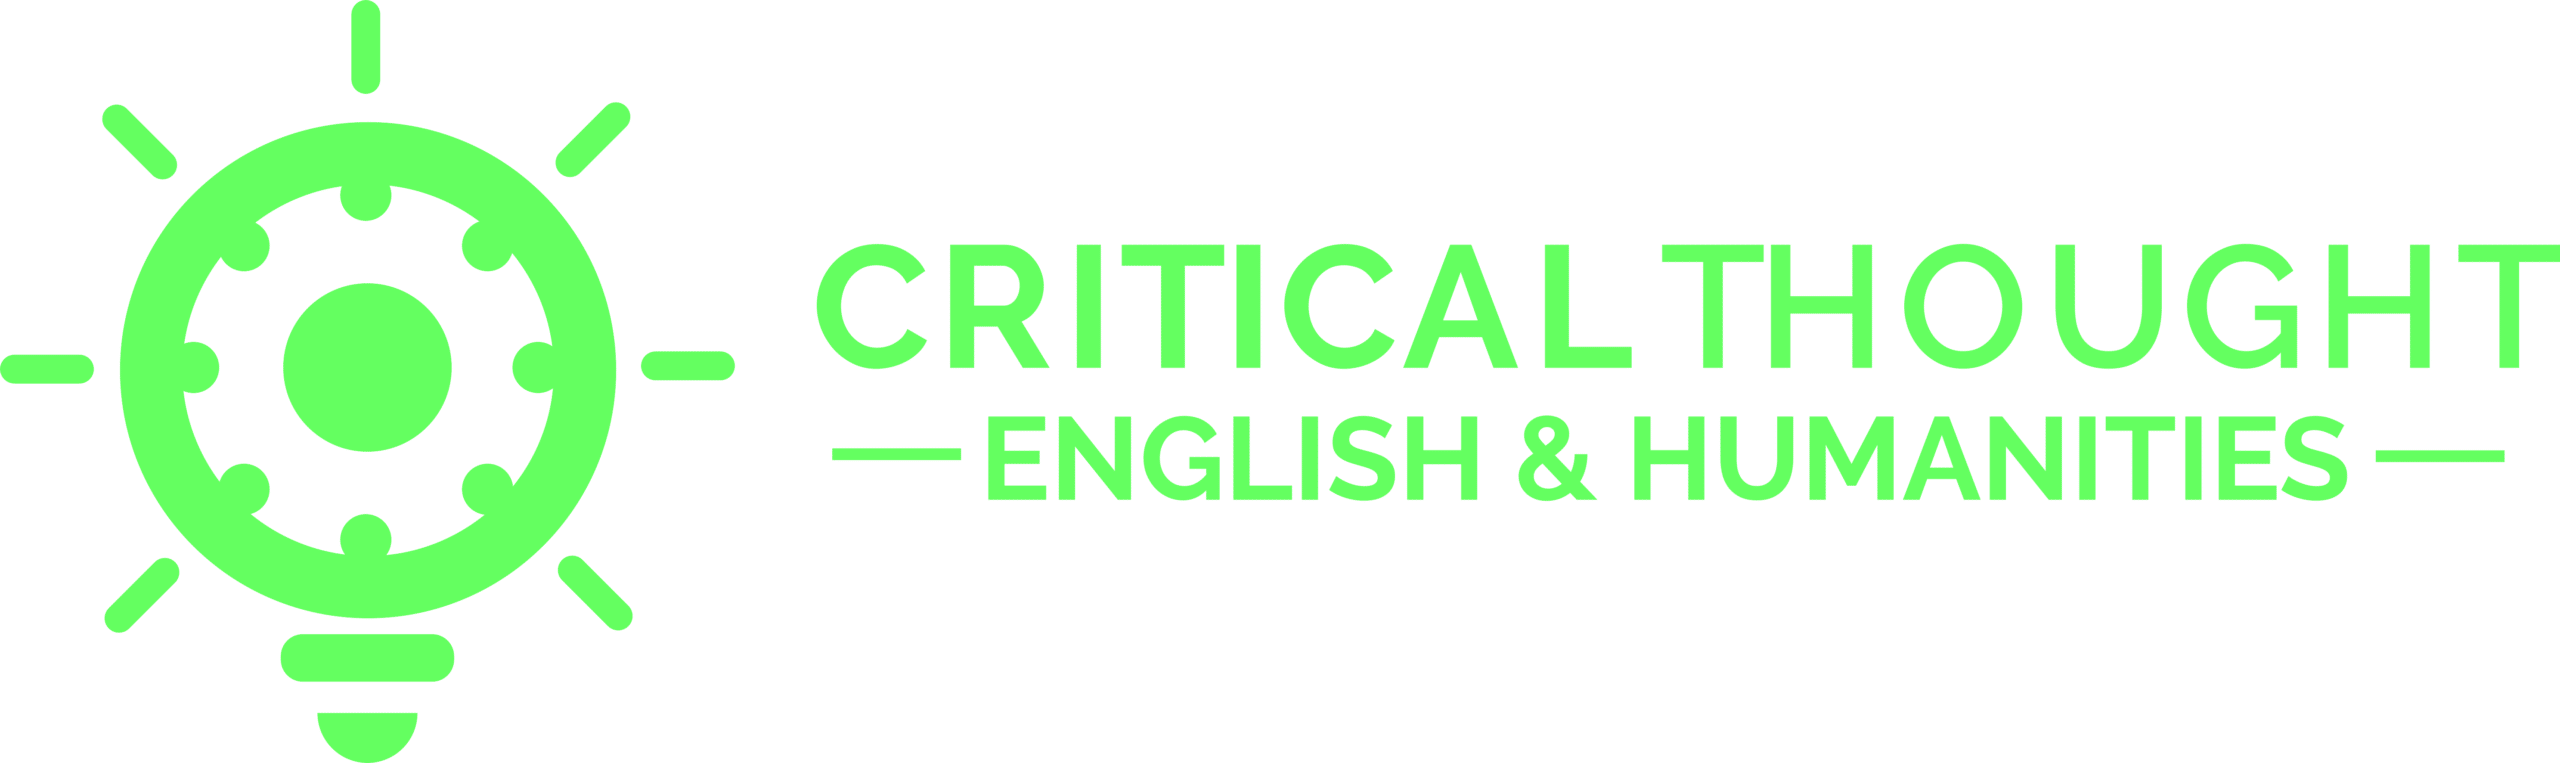 Critical Thought English and Humanities